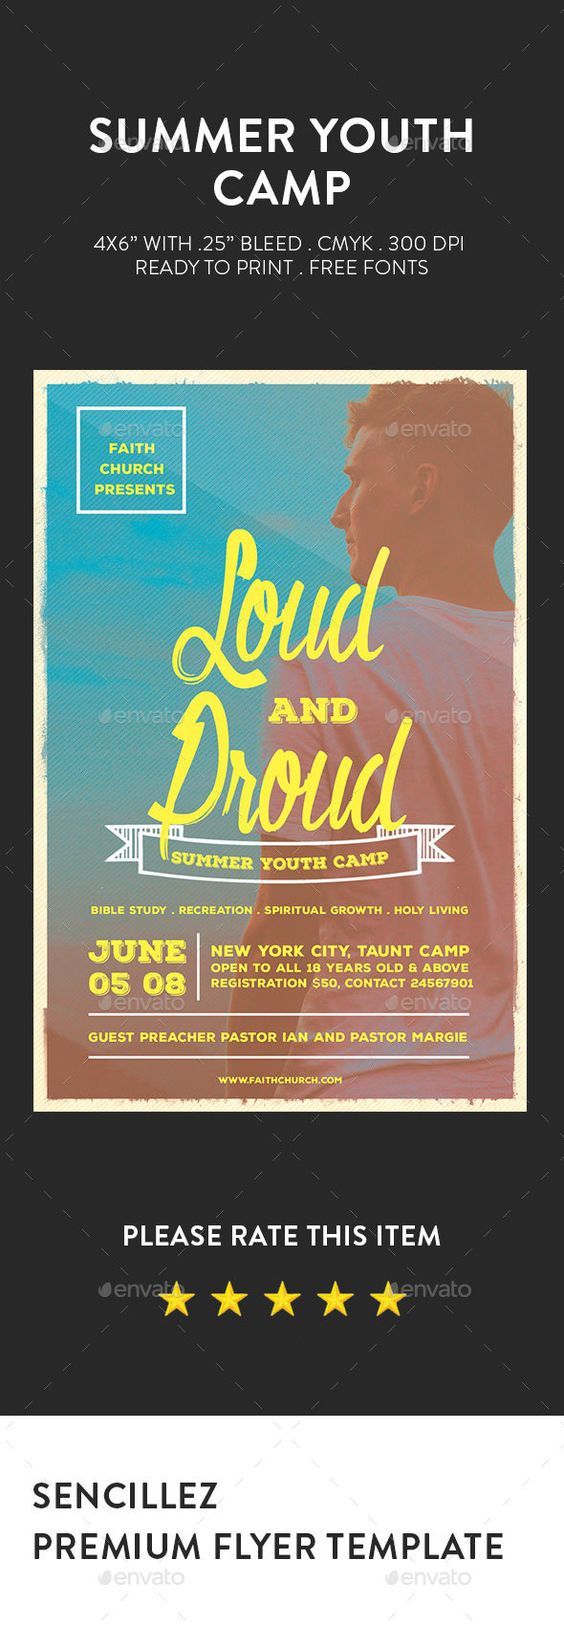 le catalogue d idées summer youth camp flyer church flyers design flyer template